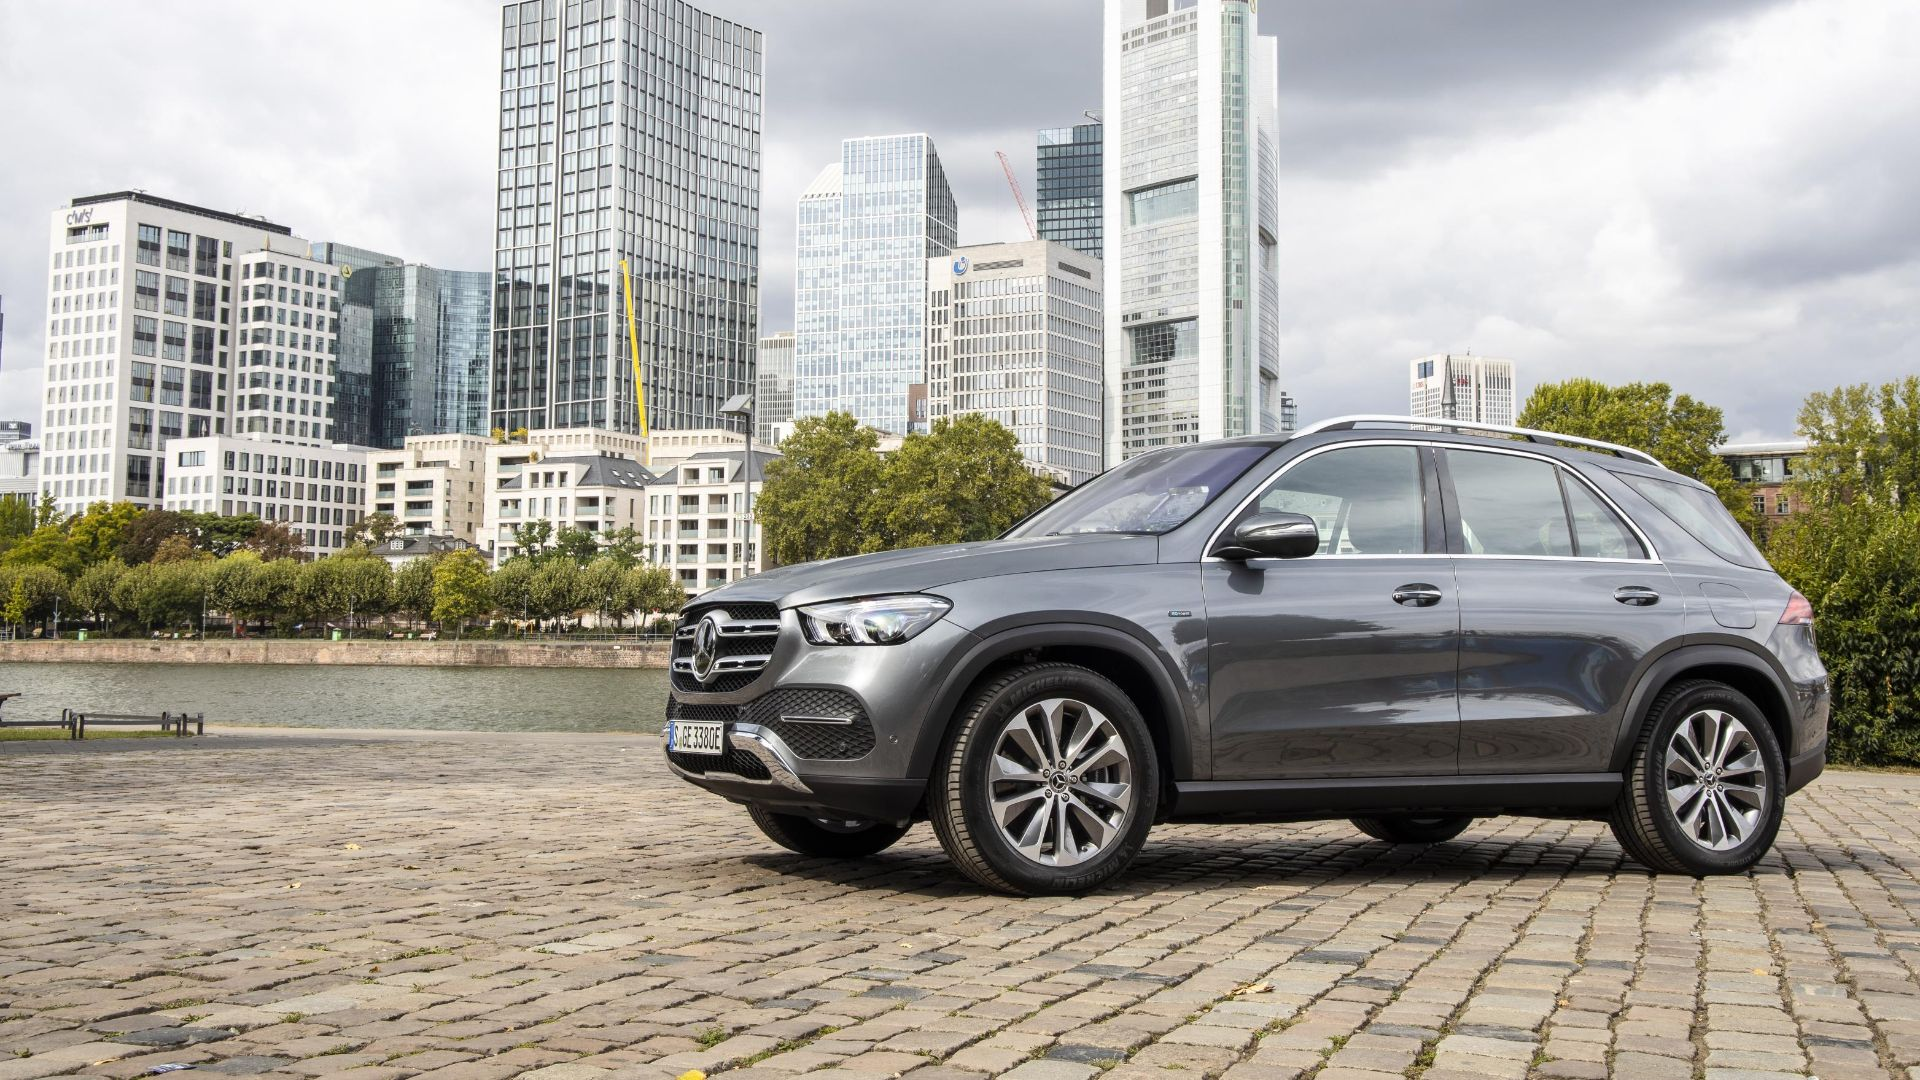 Should SUVs be banned from company car fleets